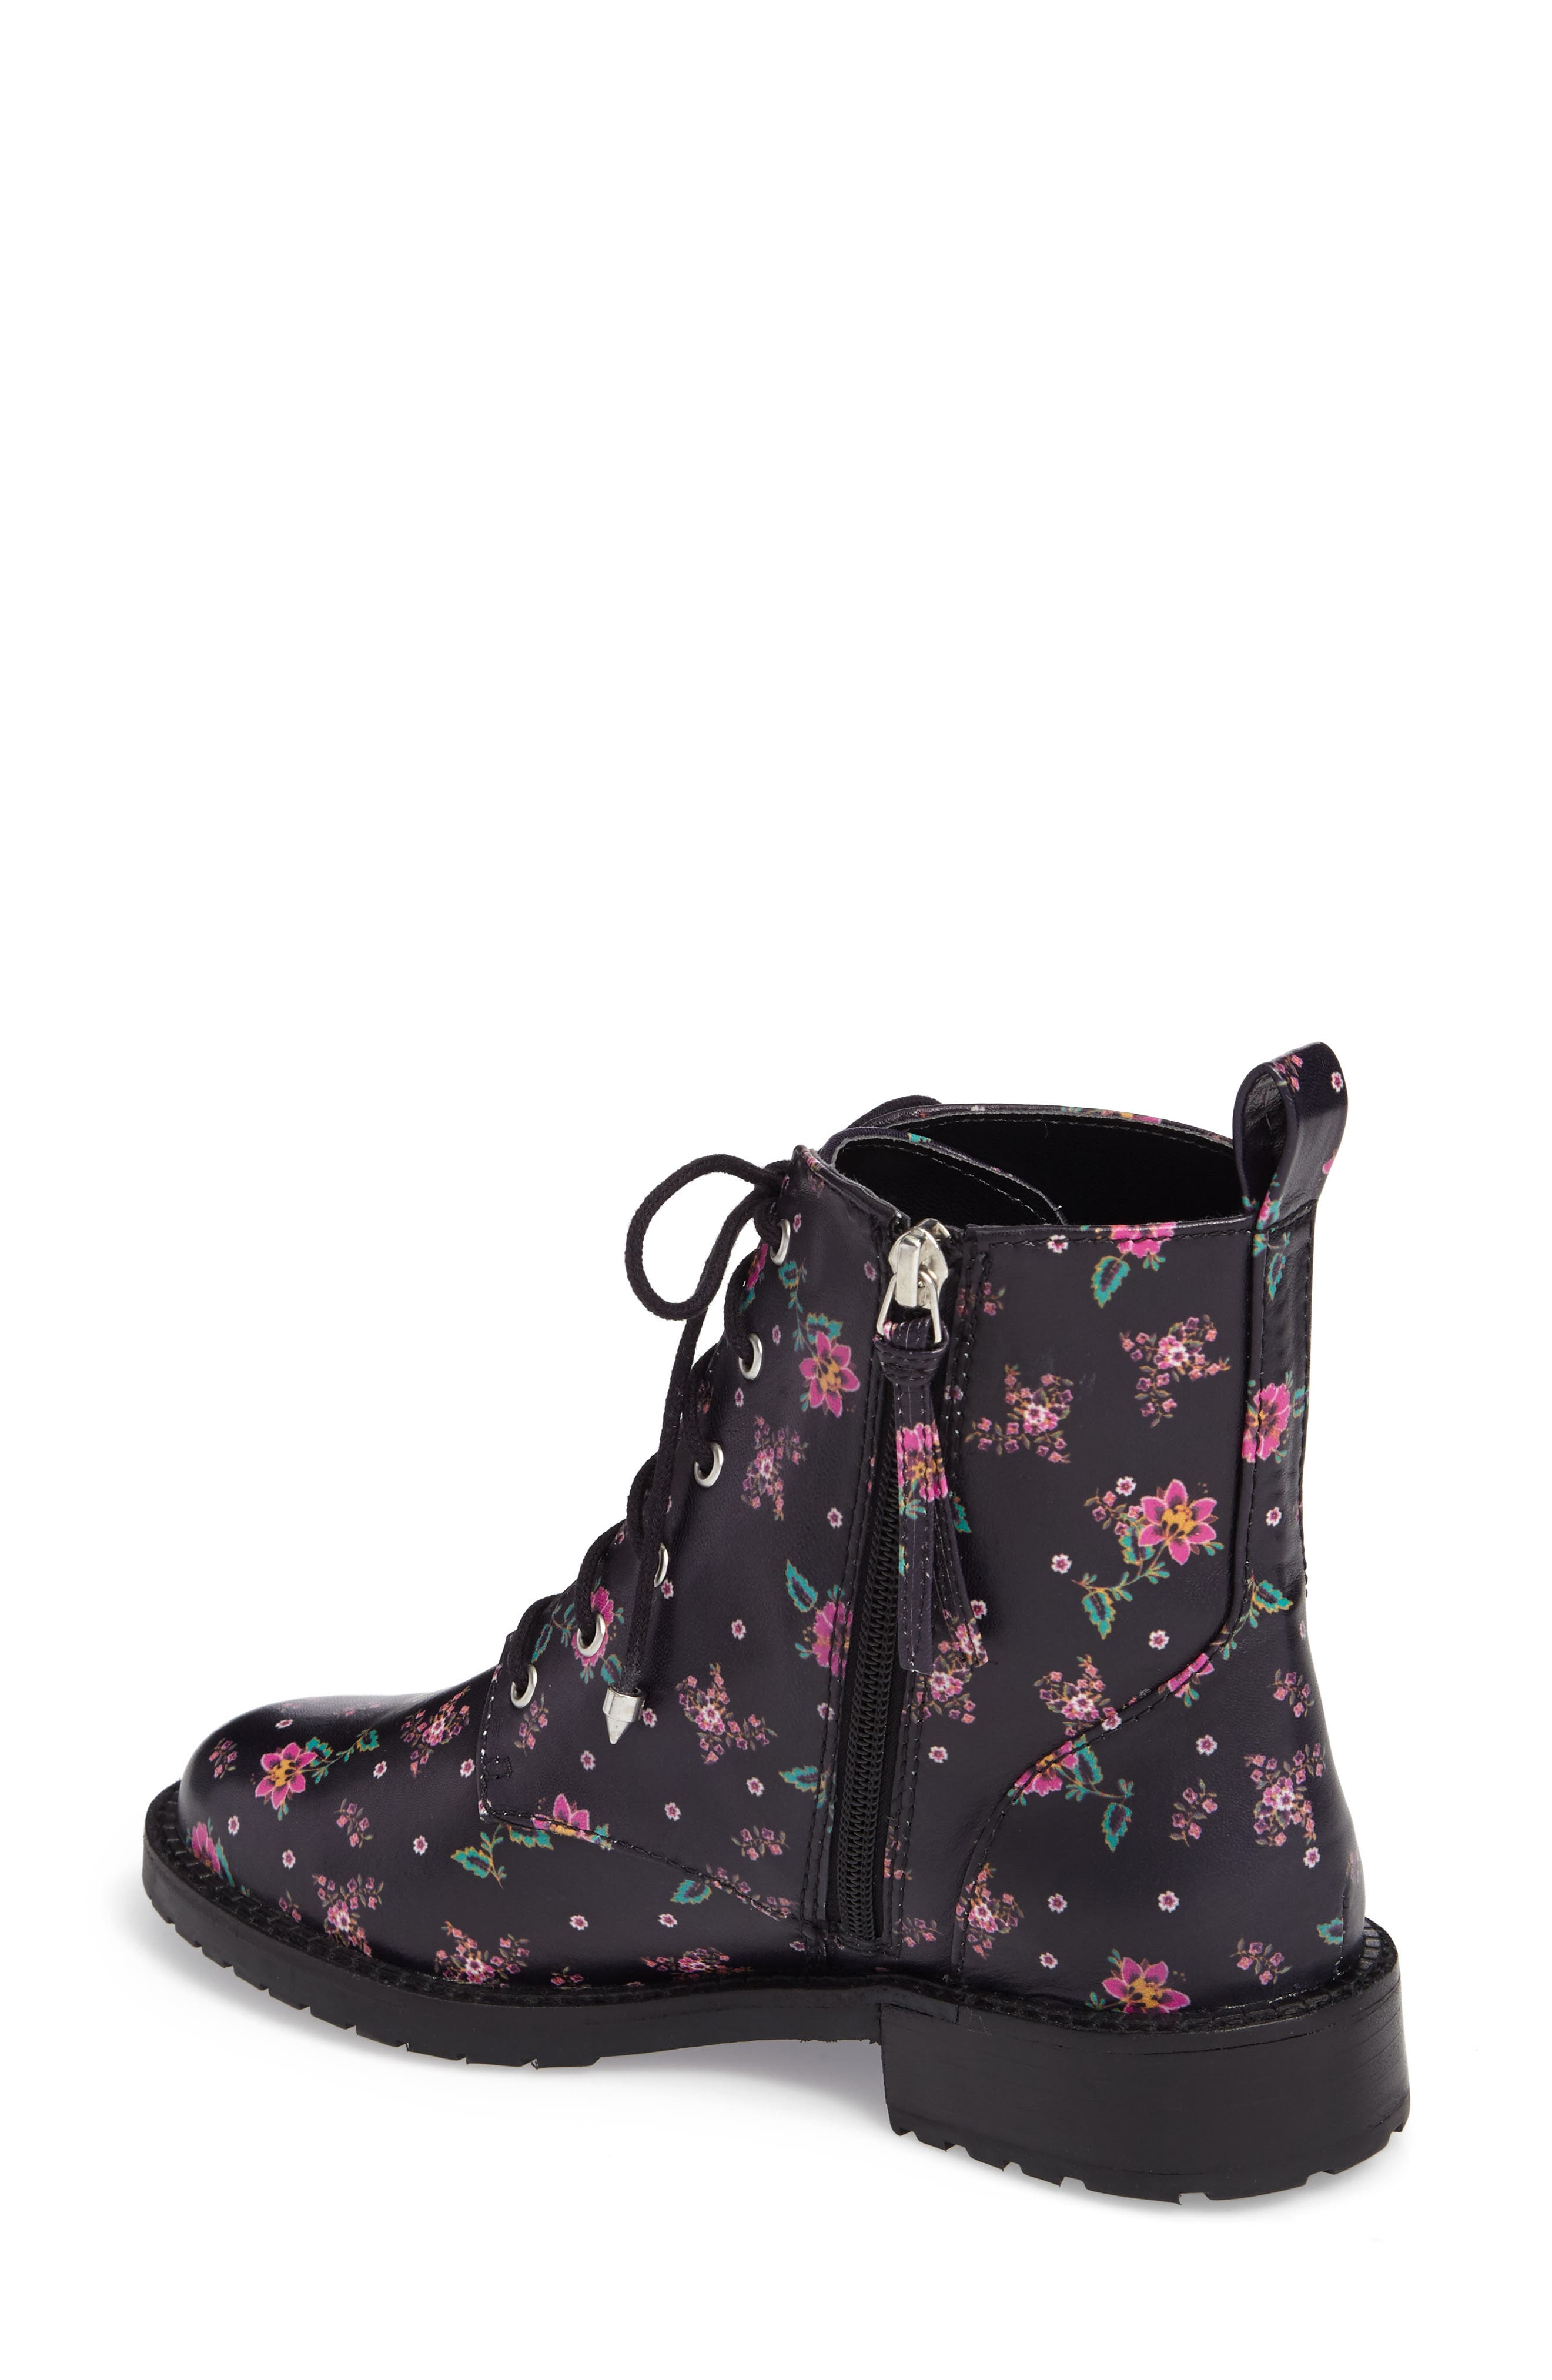 Gerry Lace-Up Boot,                             Alternate thumbnail 2, color,                             001